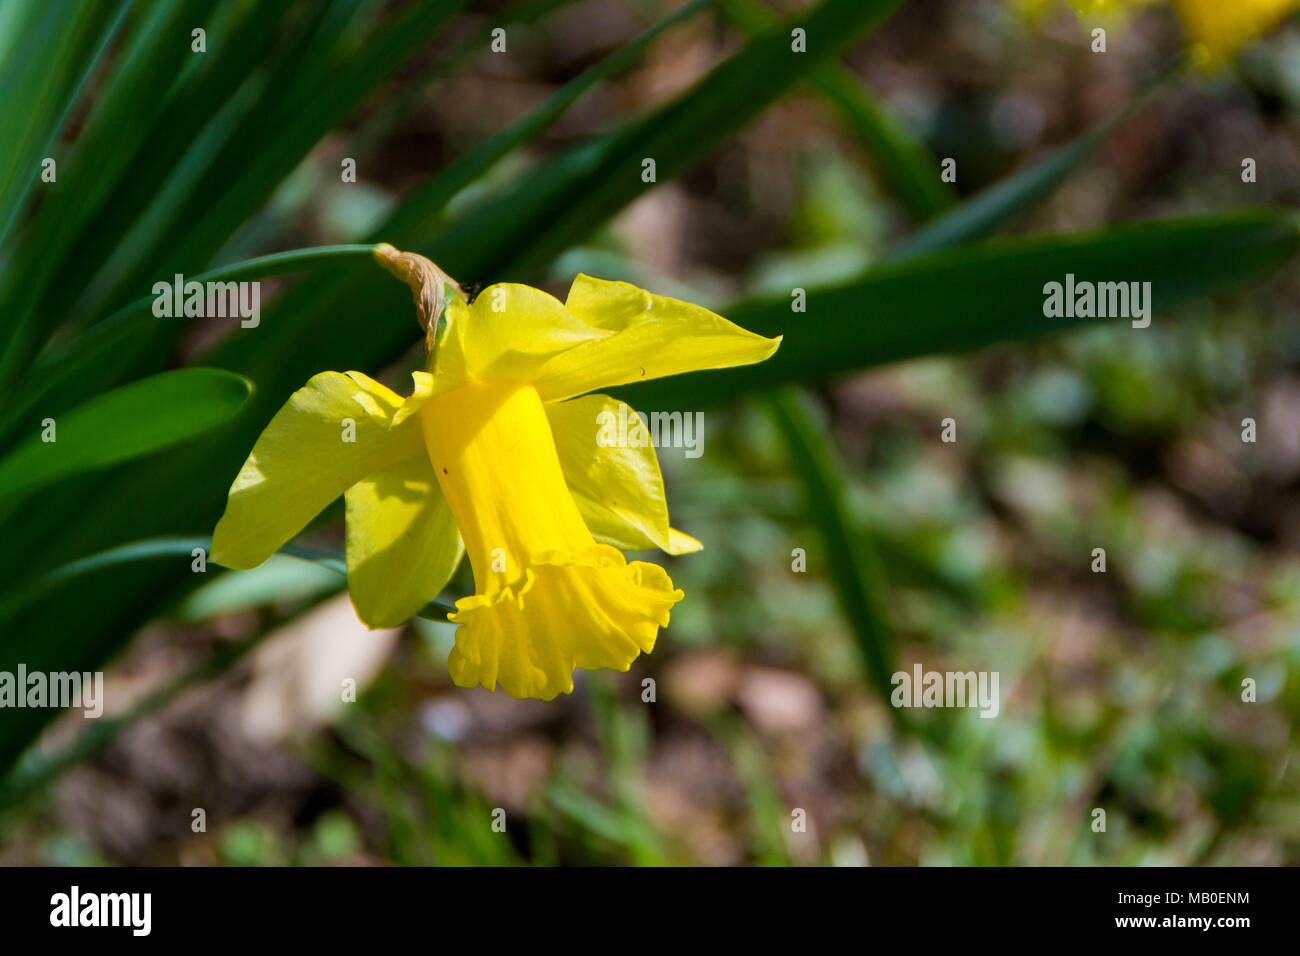 Flower of narcissus. A bulbous Eurasian plant of a genus that includes the daffodil, especially (in gardening) one with flowers that have white or pal - Stock Image